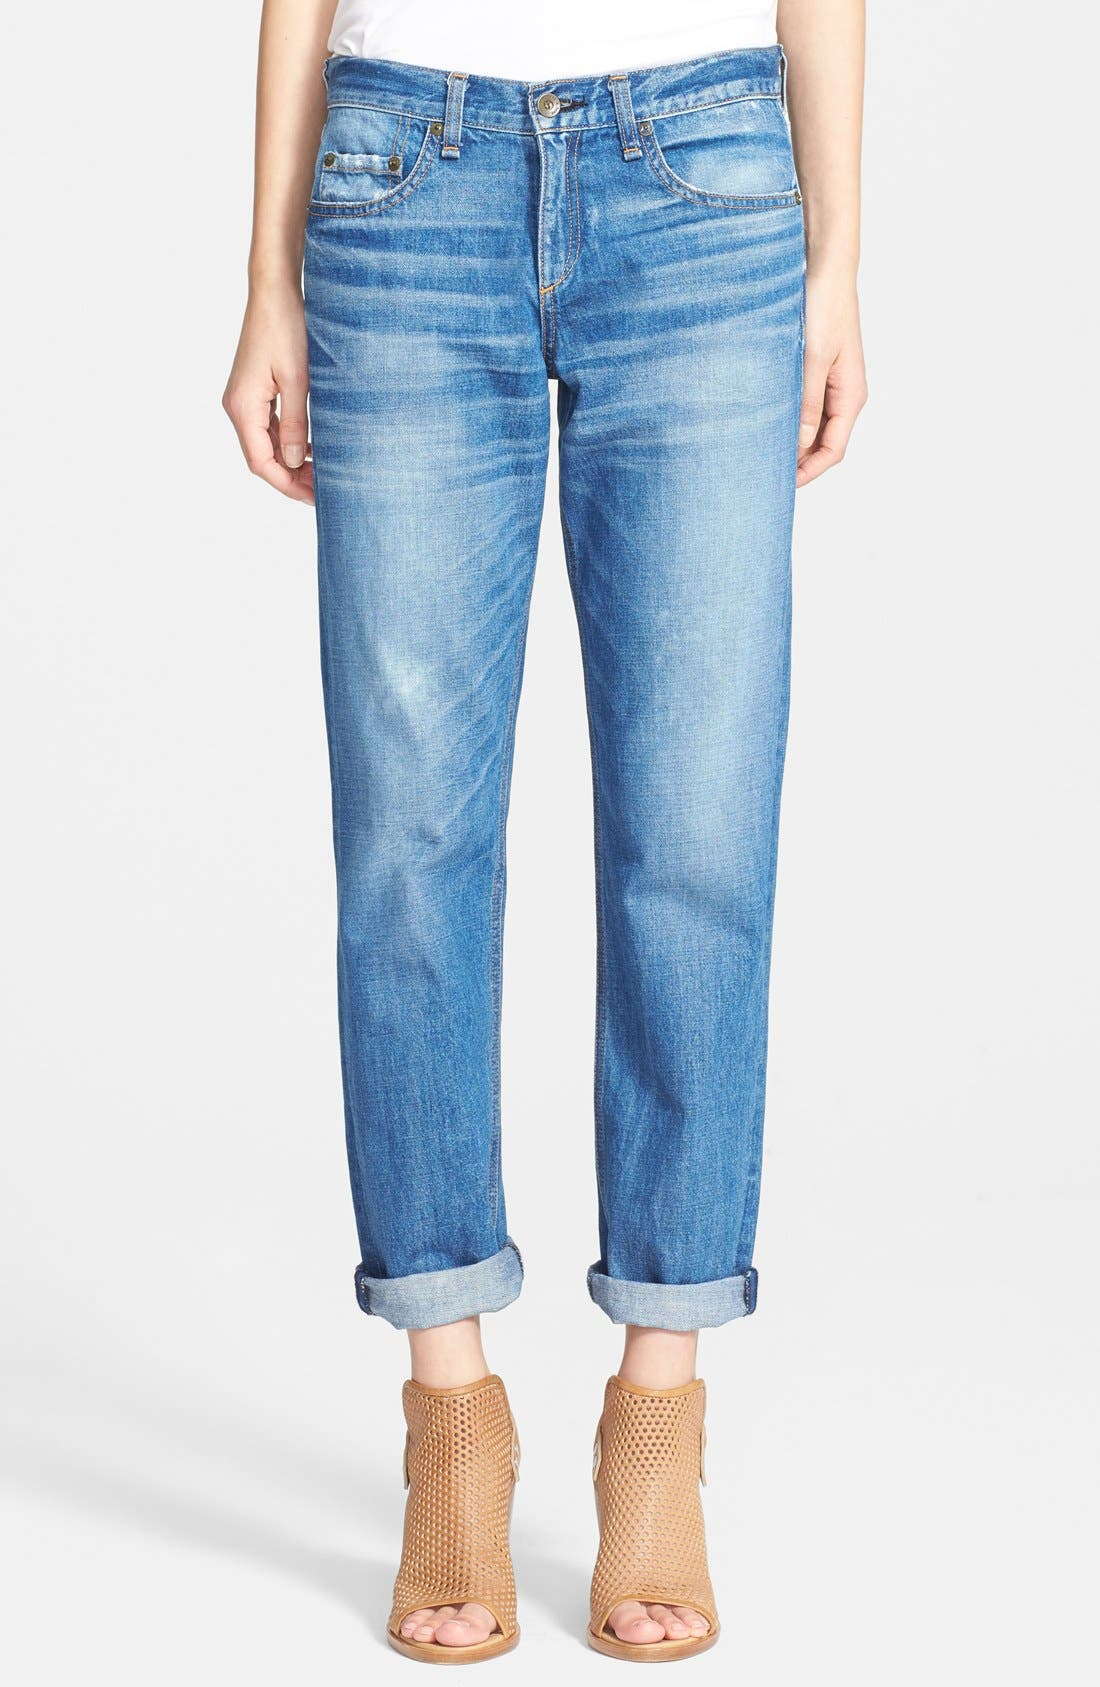 Alternate Image 1 Selected - rag & bone/JEAN Boyfriend Jeans (Barnsley)